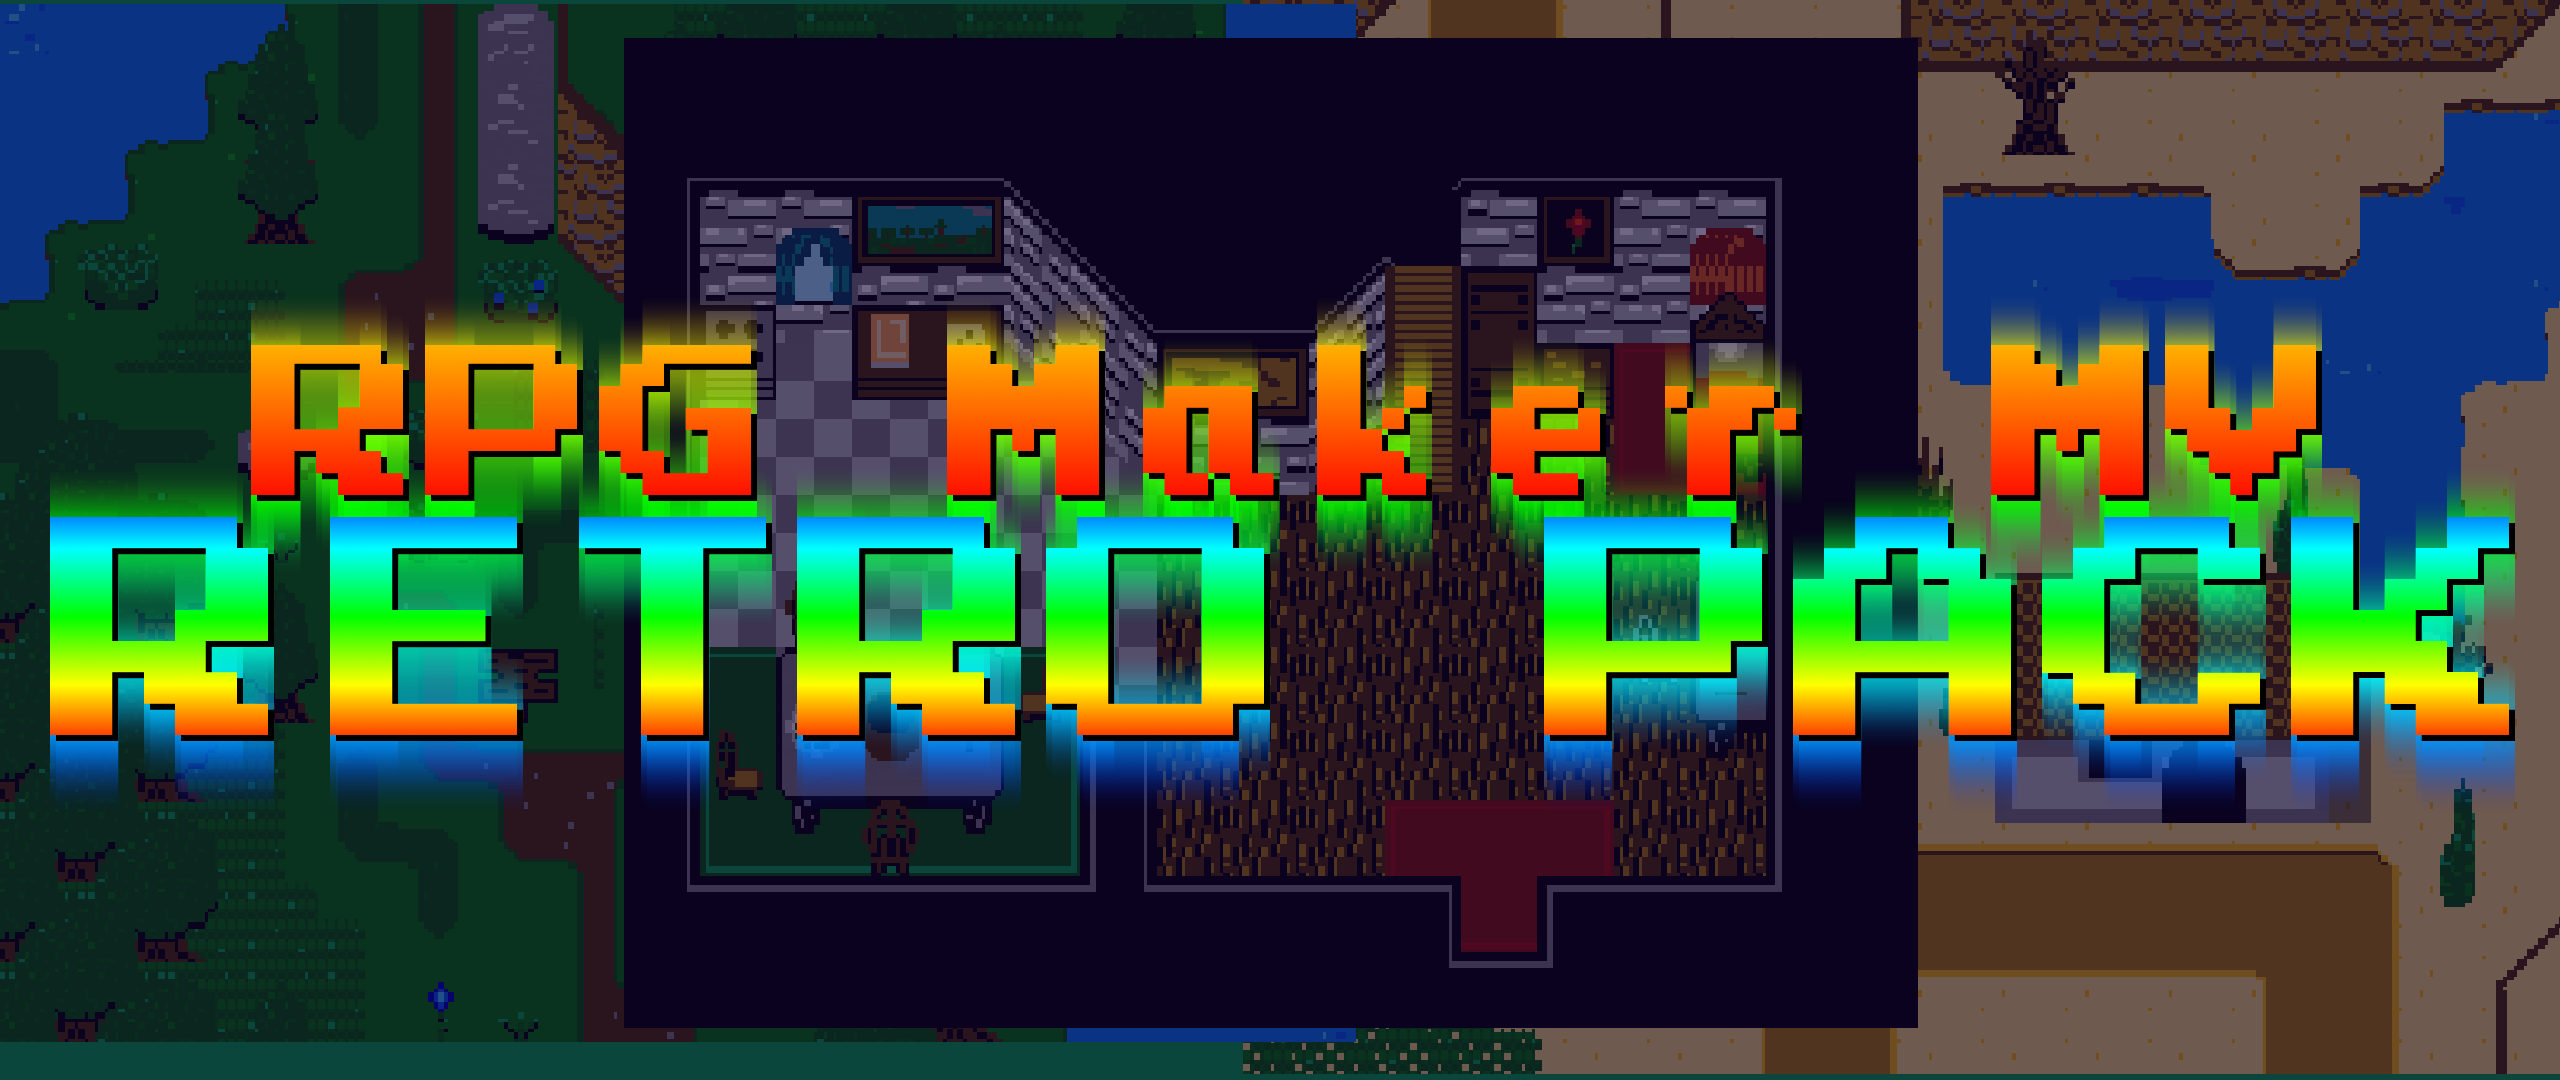 RPG Maker MV Retro Tileset